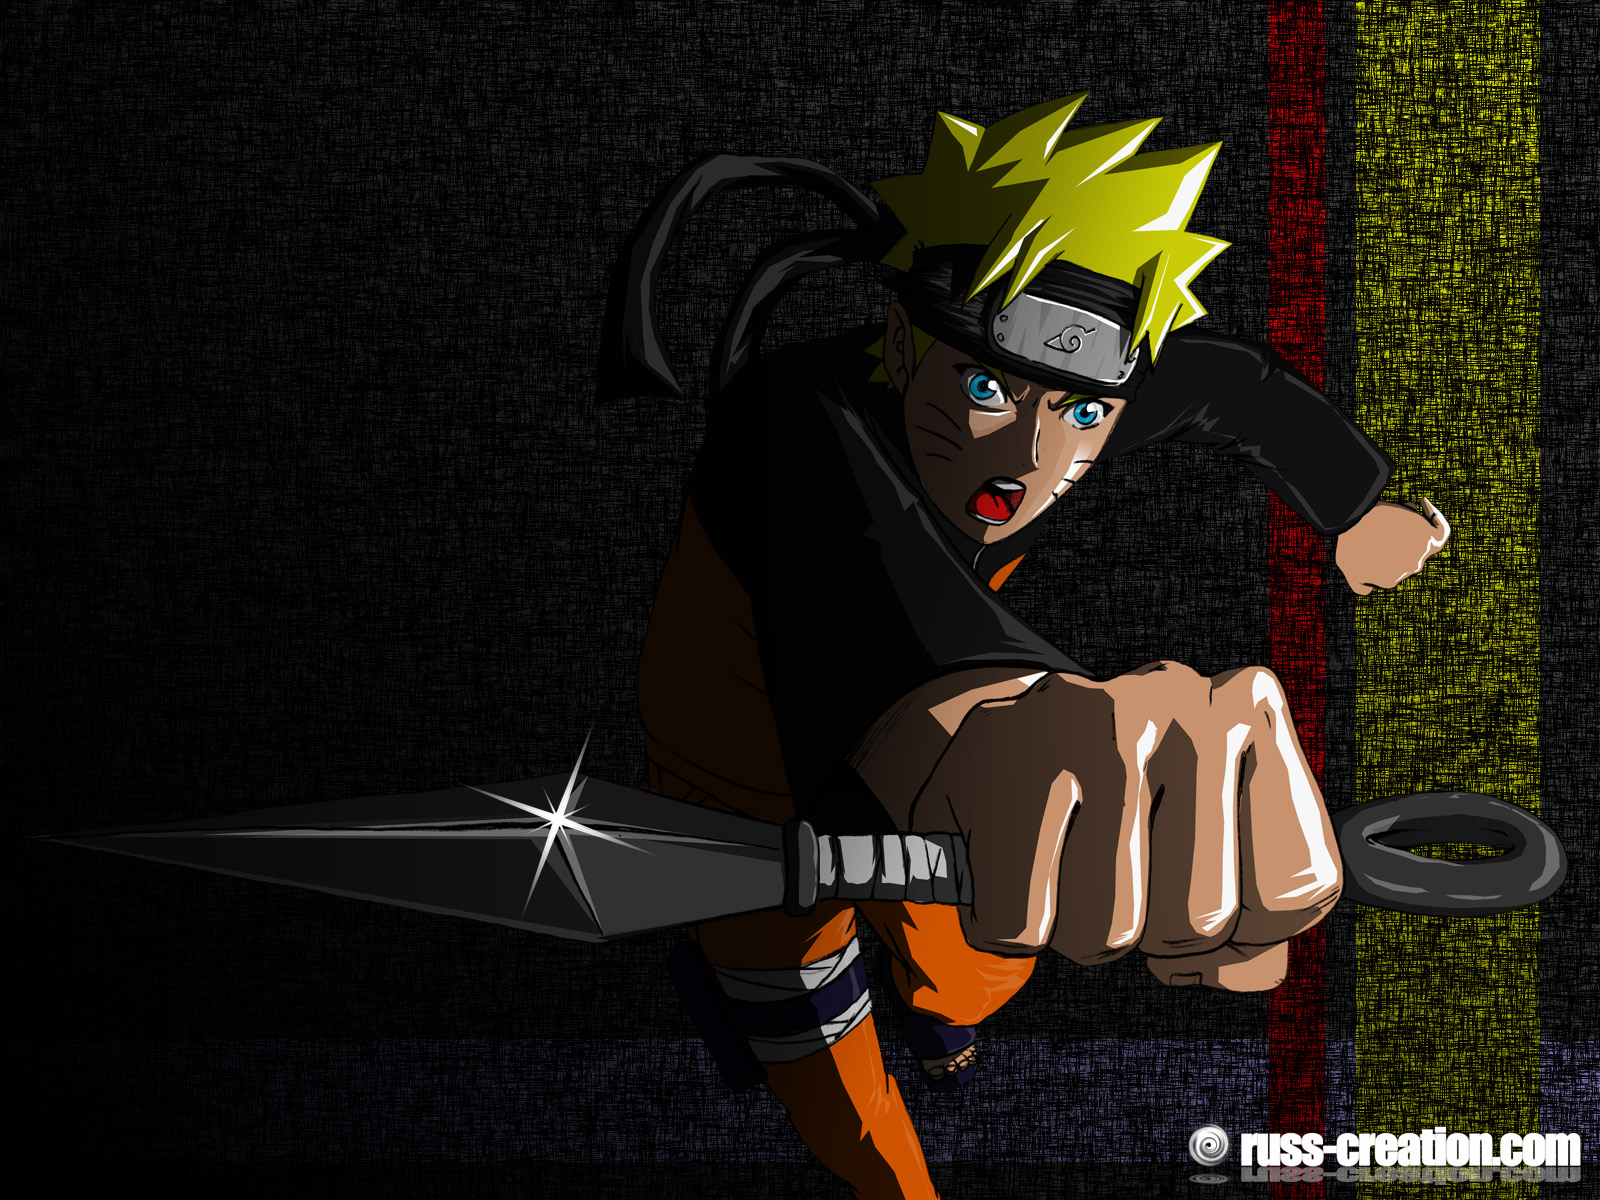 naruto live wallpaper for pc wallpapersafari